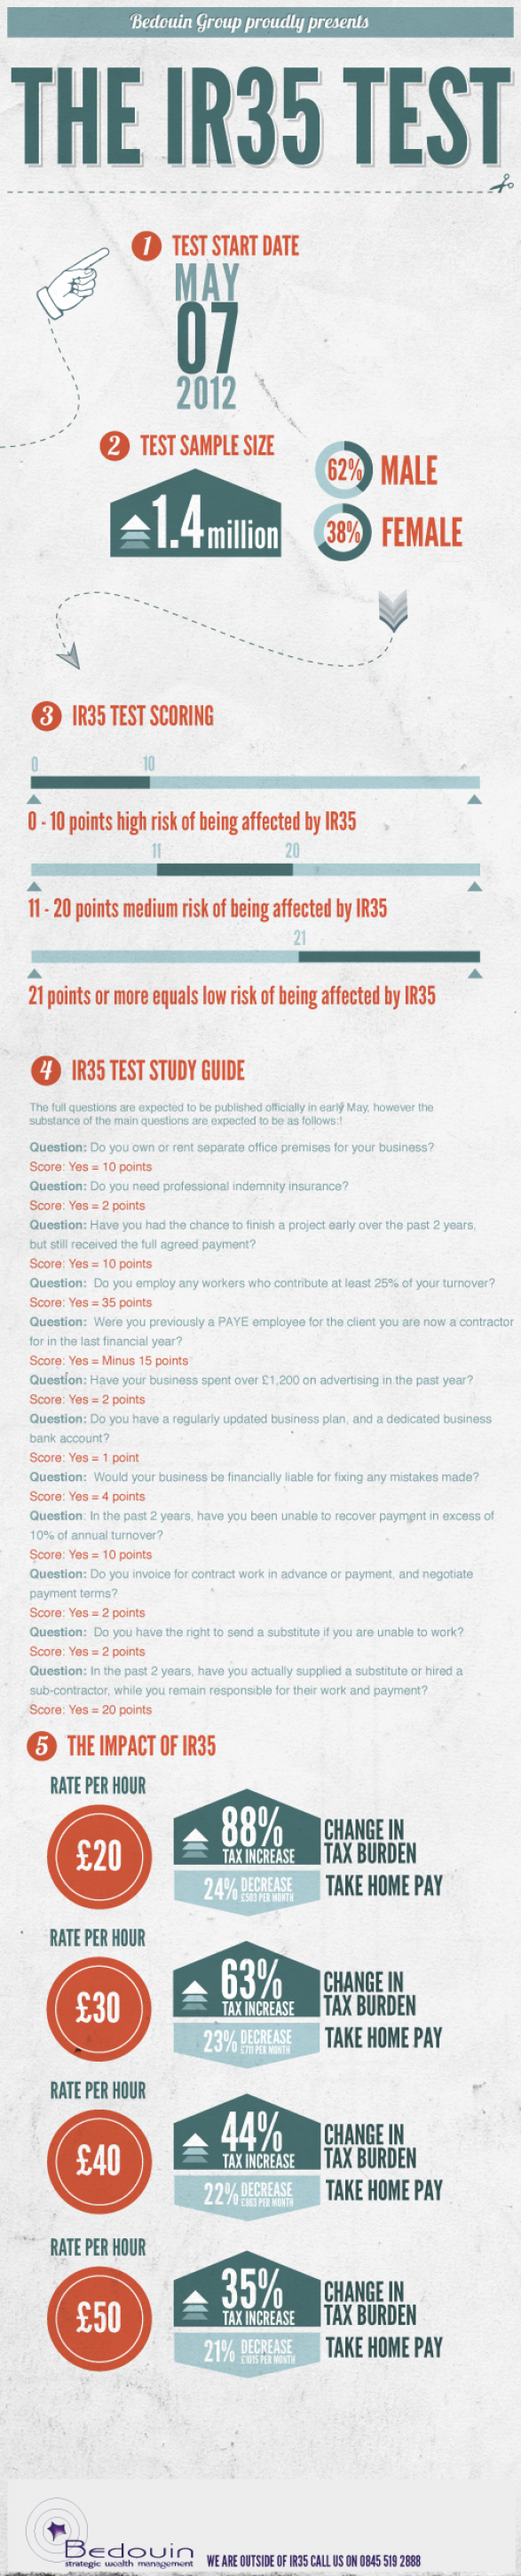 The Great IR35 Test